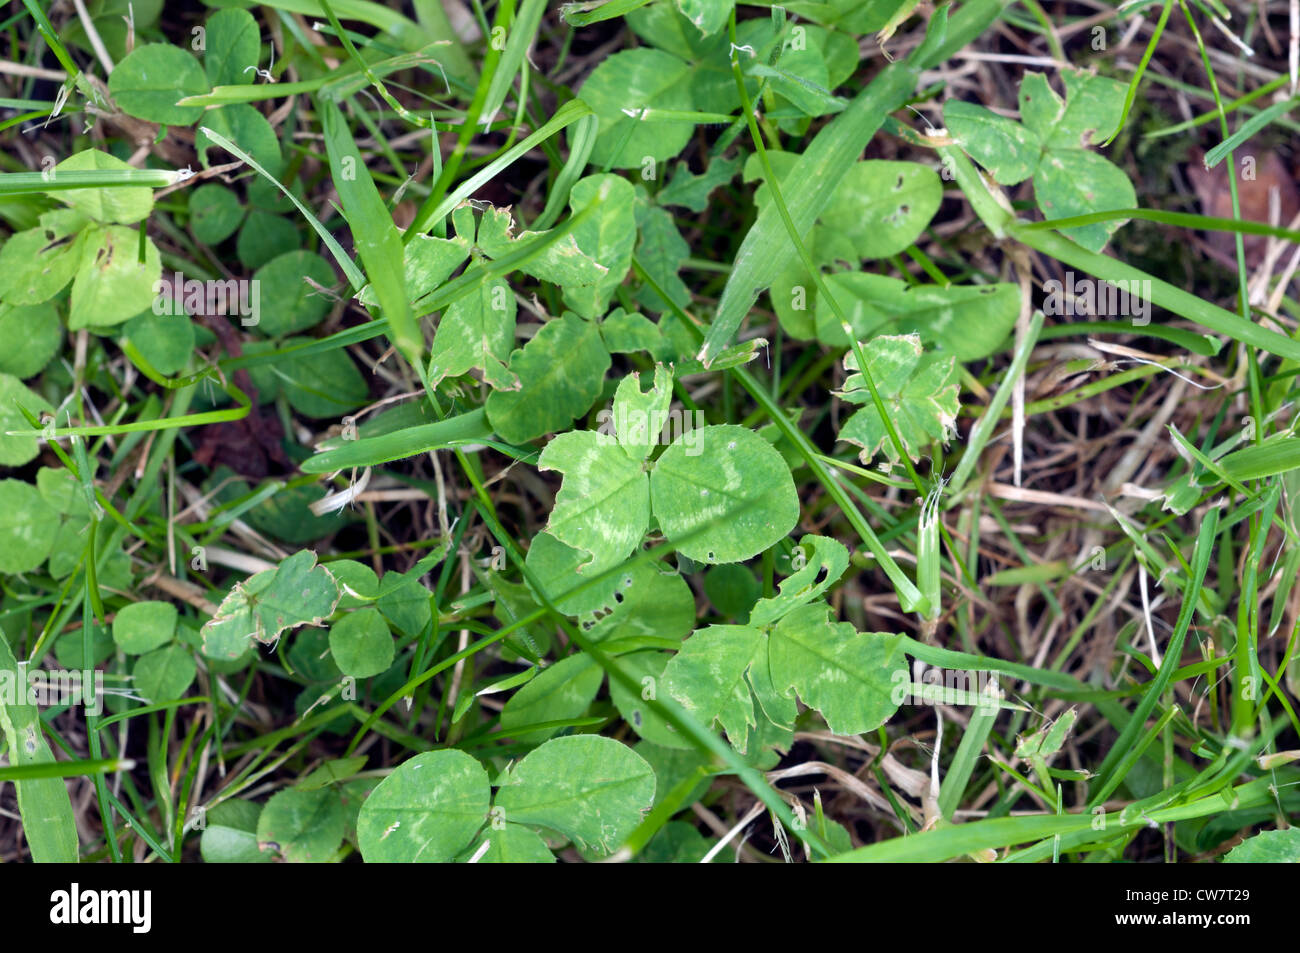 Clover Lawn Weed Stock Photos Clover Lawn Weed Stock Images Alamy